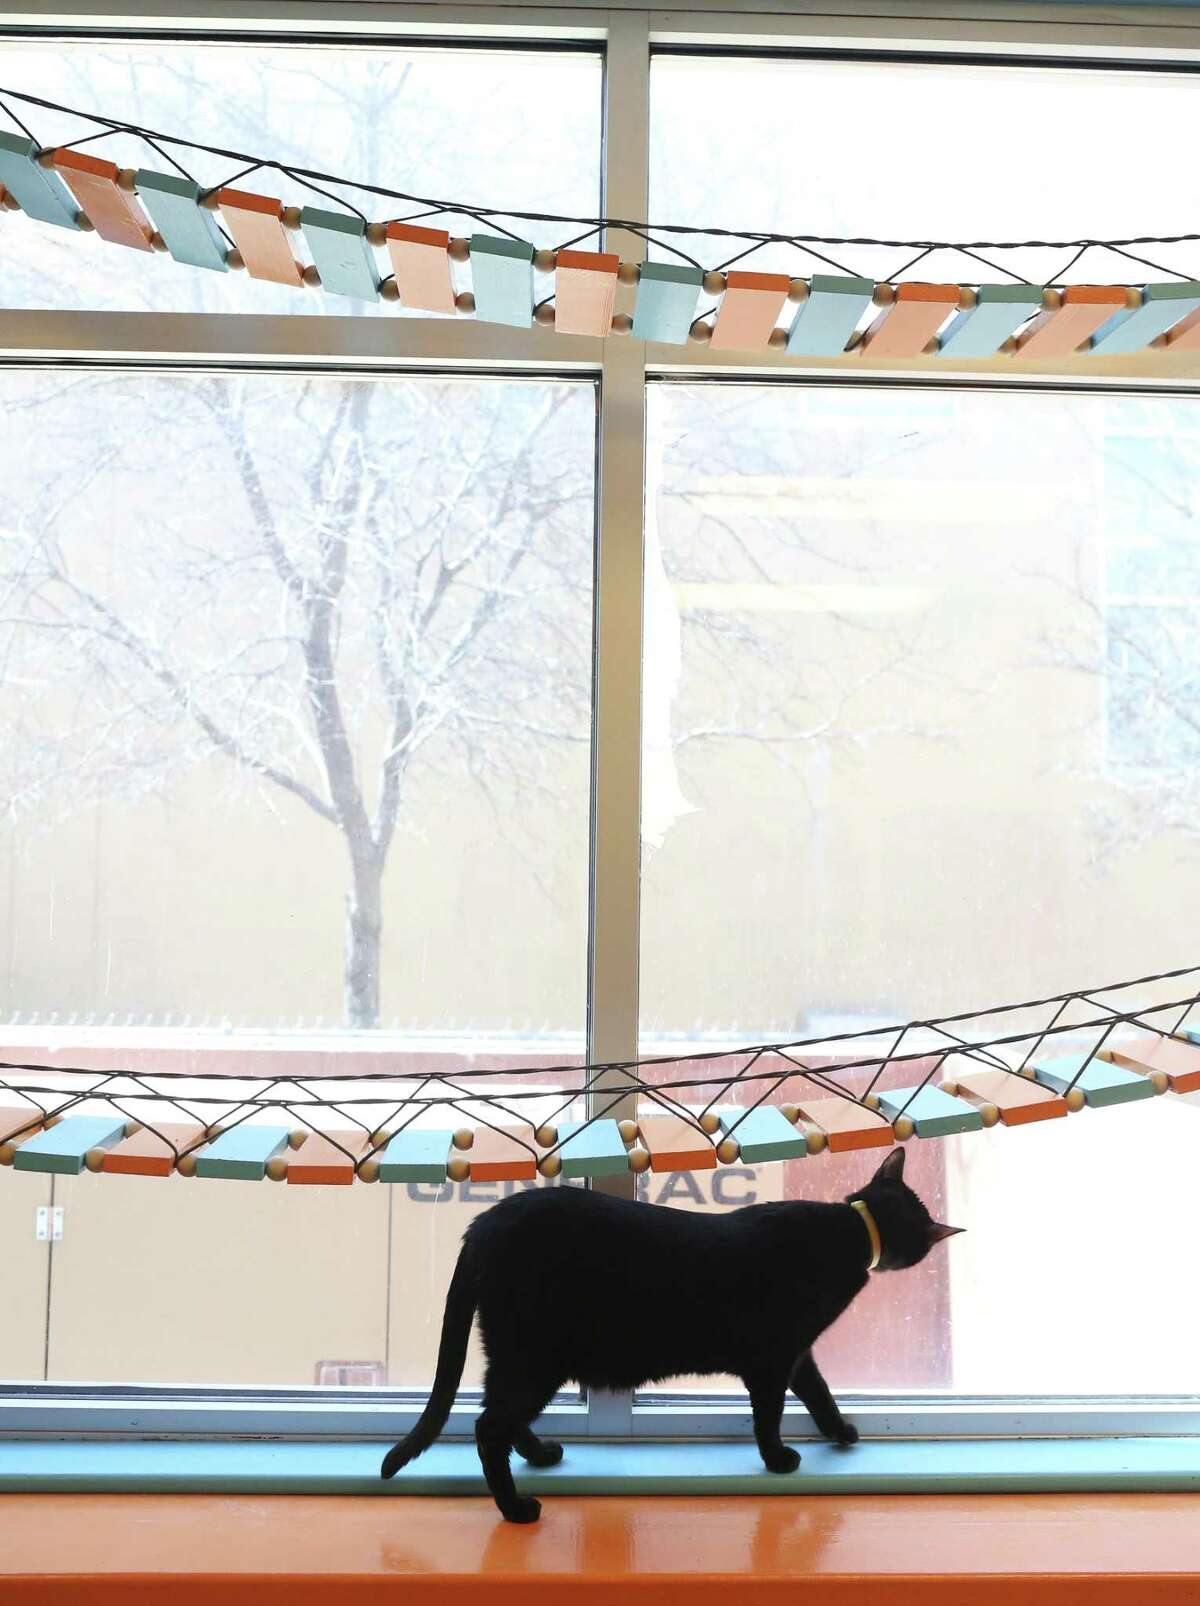 A cat looks out the window of the Haven for Hope cattery on Feb. 26, 2018. The $12,000 cattery renovation was funded by the nonprofit, The Jackson Galaxy Project, and constructed by Rescue Build, a related nonprofit. The cattery and a dog kennel provide housing for pets owned by clients of Haven for Hope.